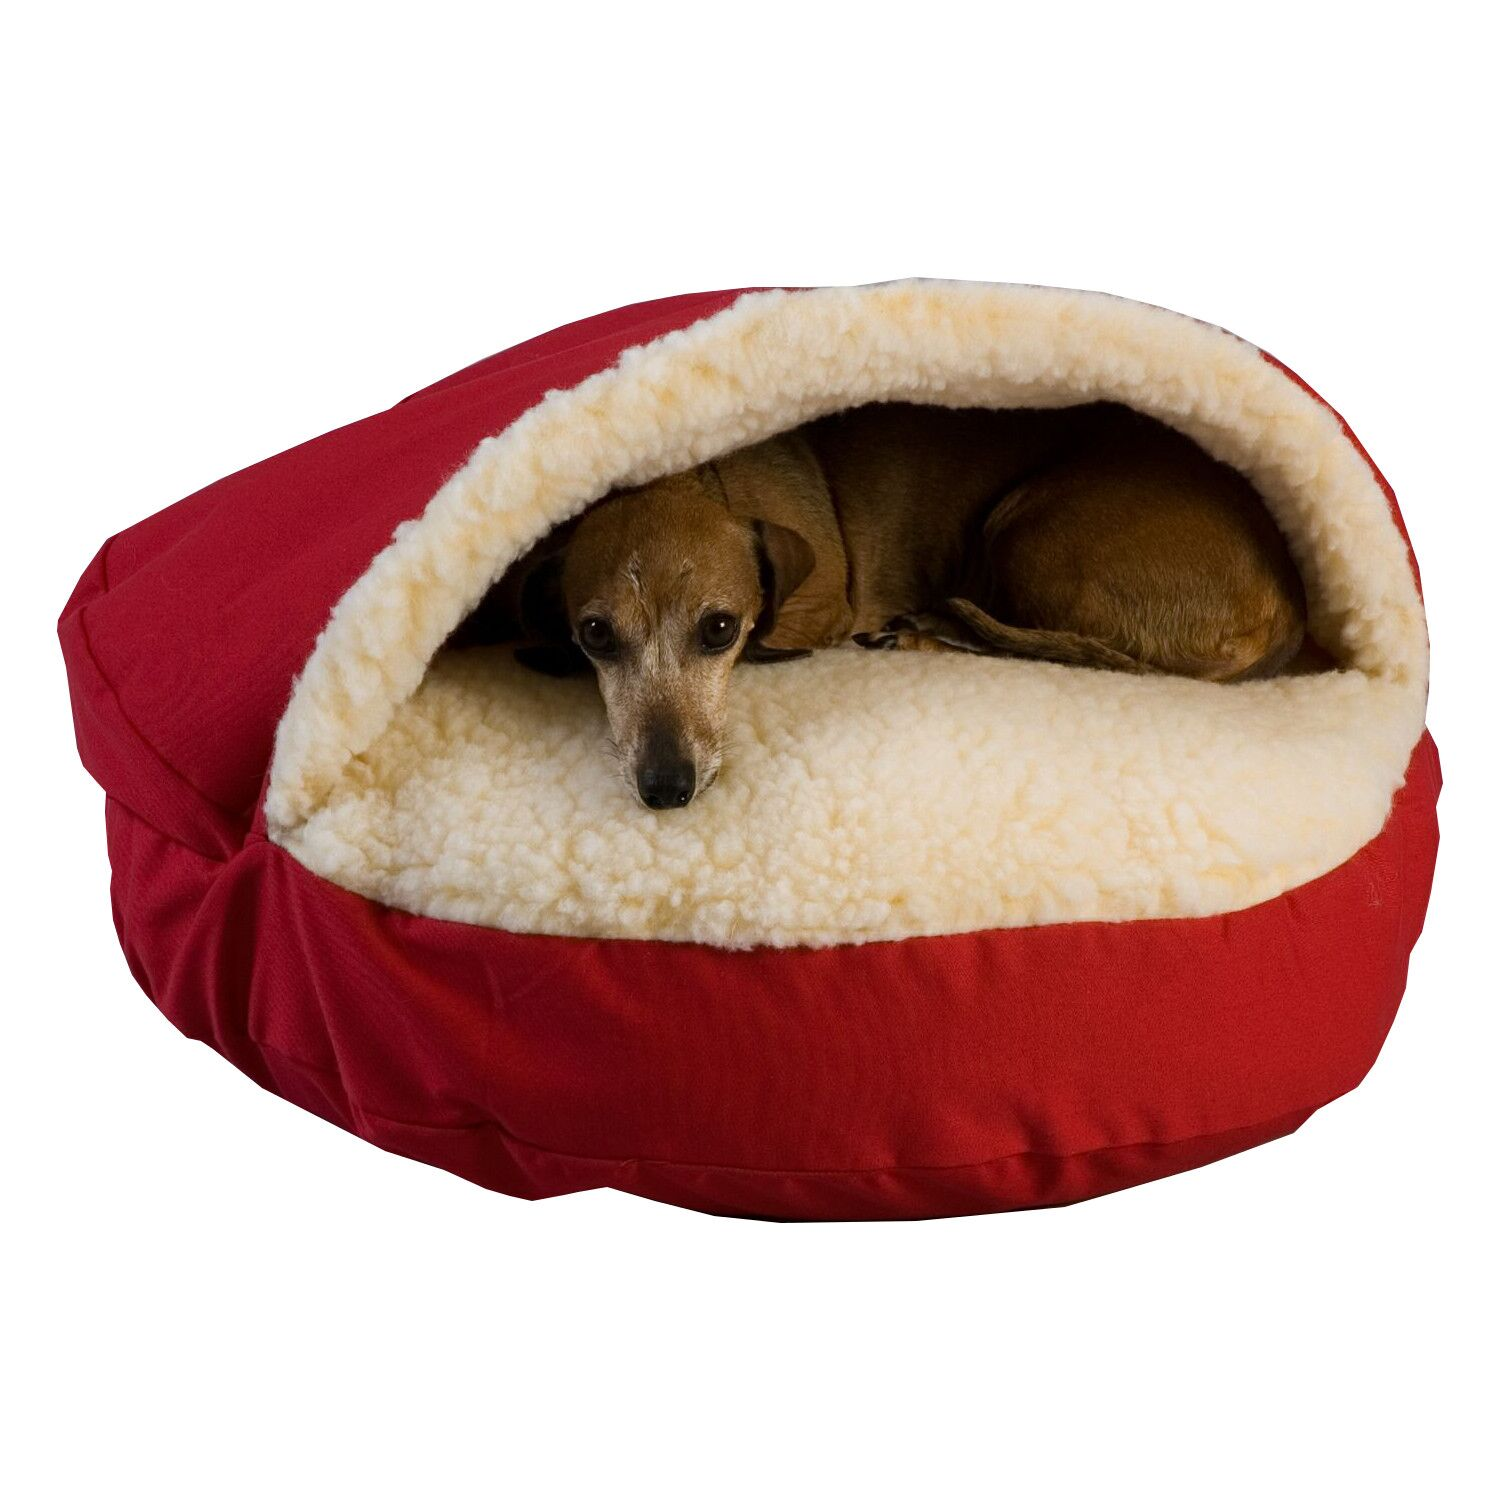 Christal Luxury Orthopedic Hooded Dog Bed Color: Red, Size: Small - 25